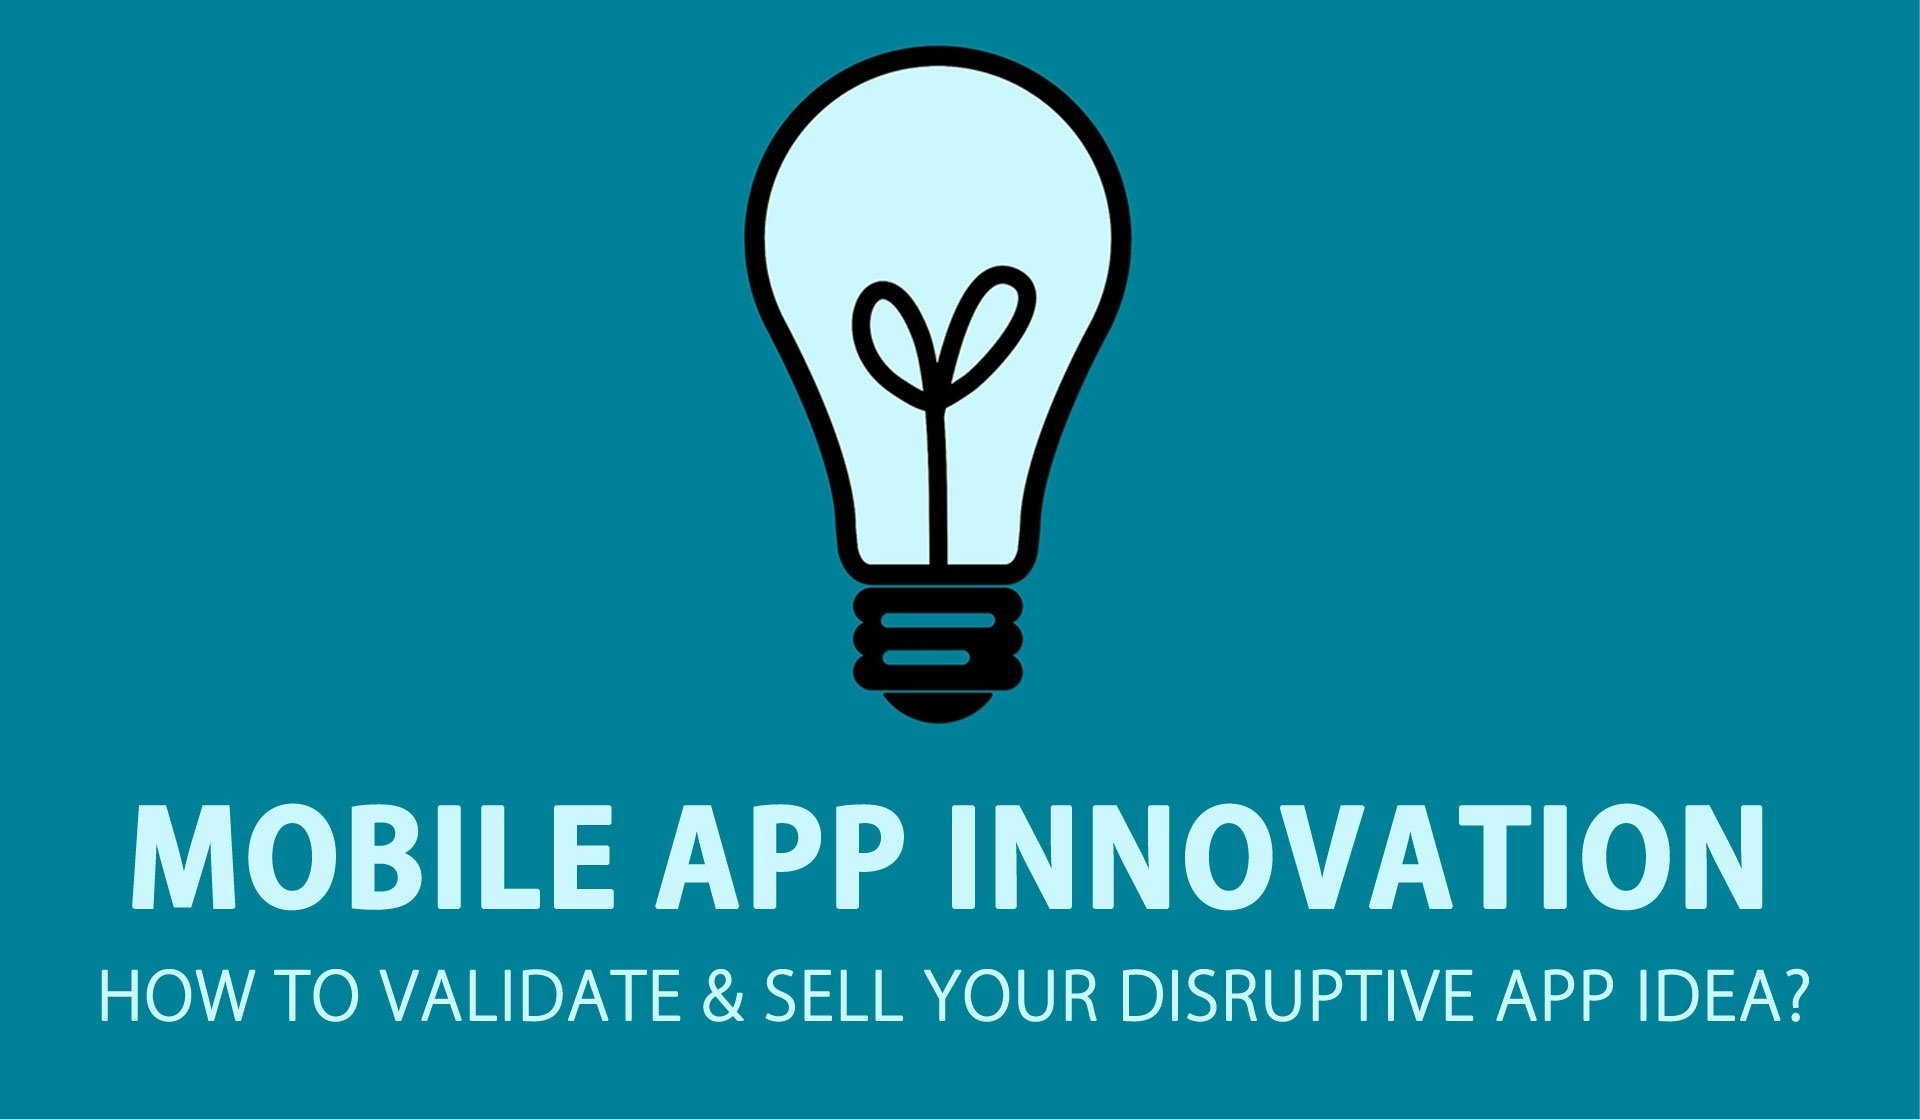 10 Best I Have An App Idea mobile app innovation how to validate and sell your disruptive app 4 2020